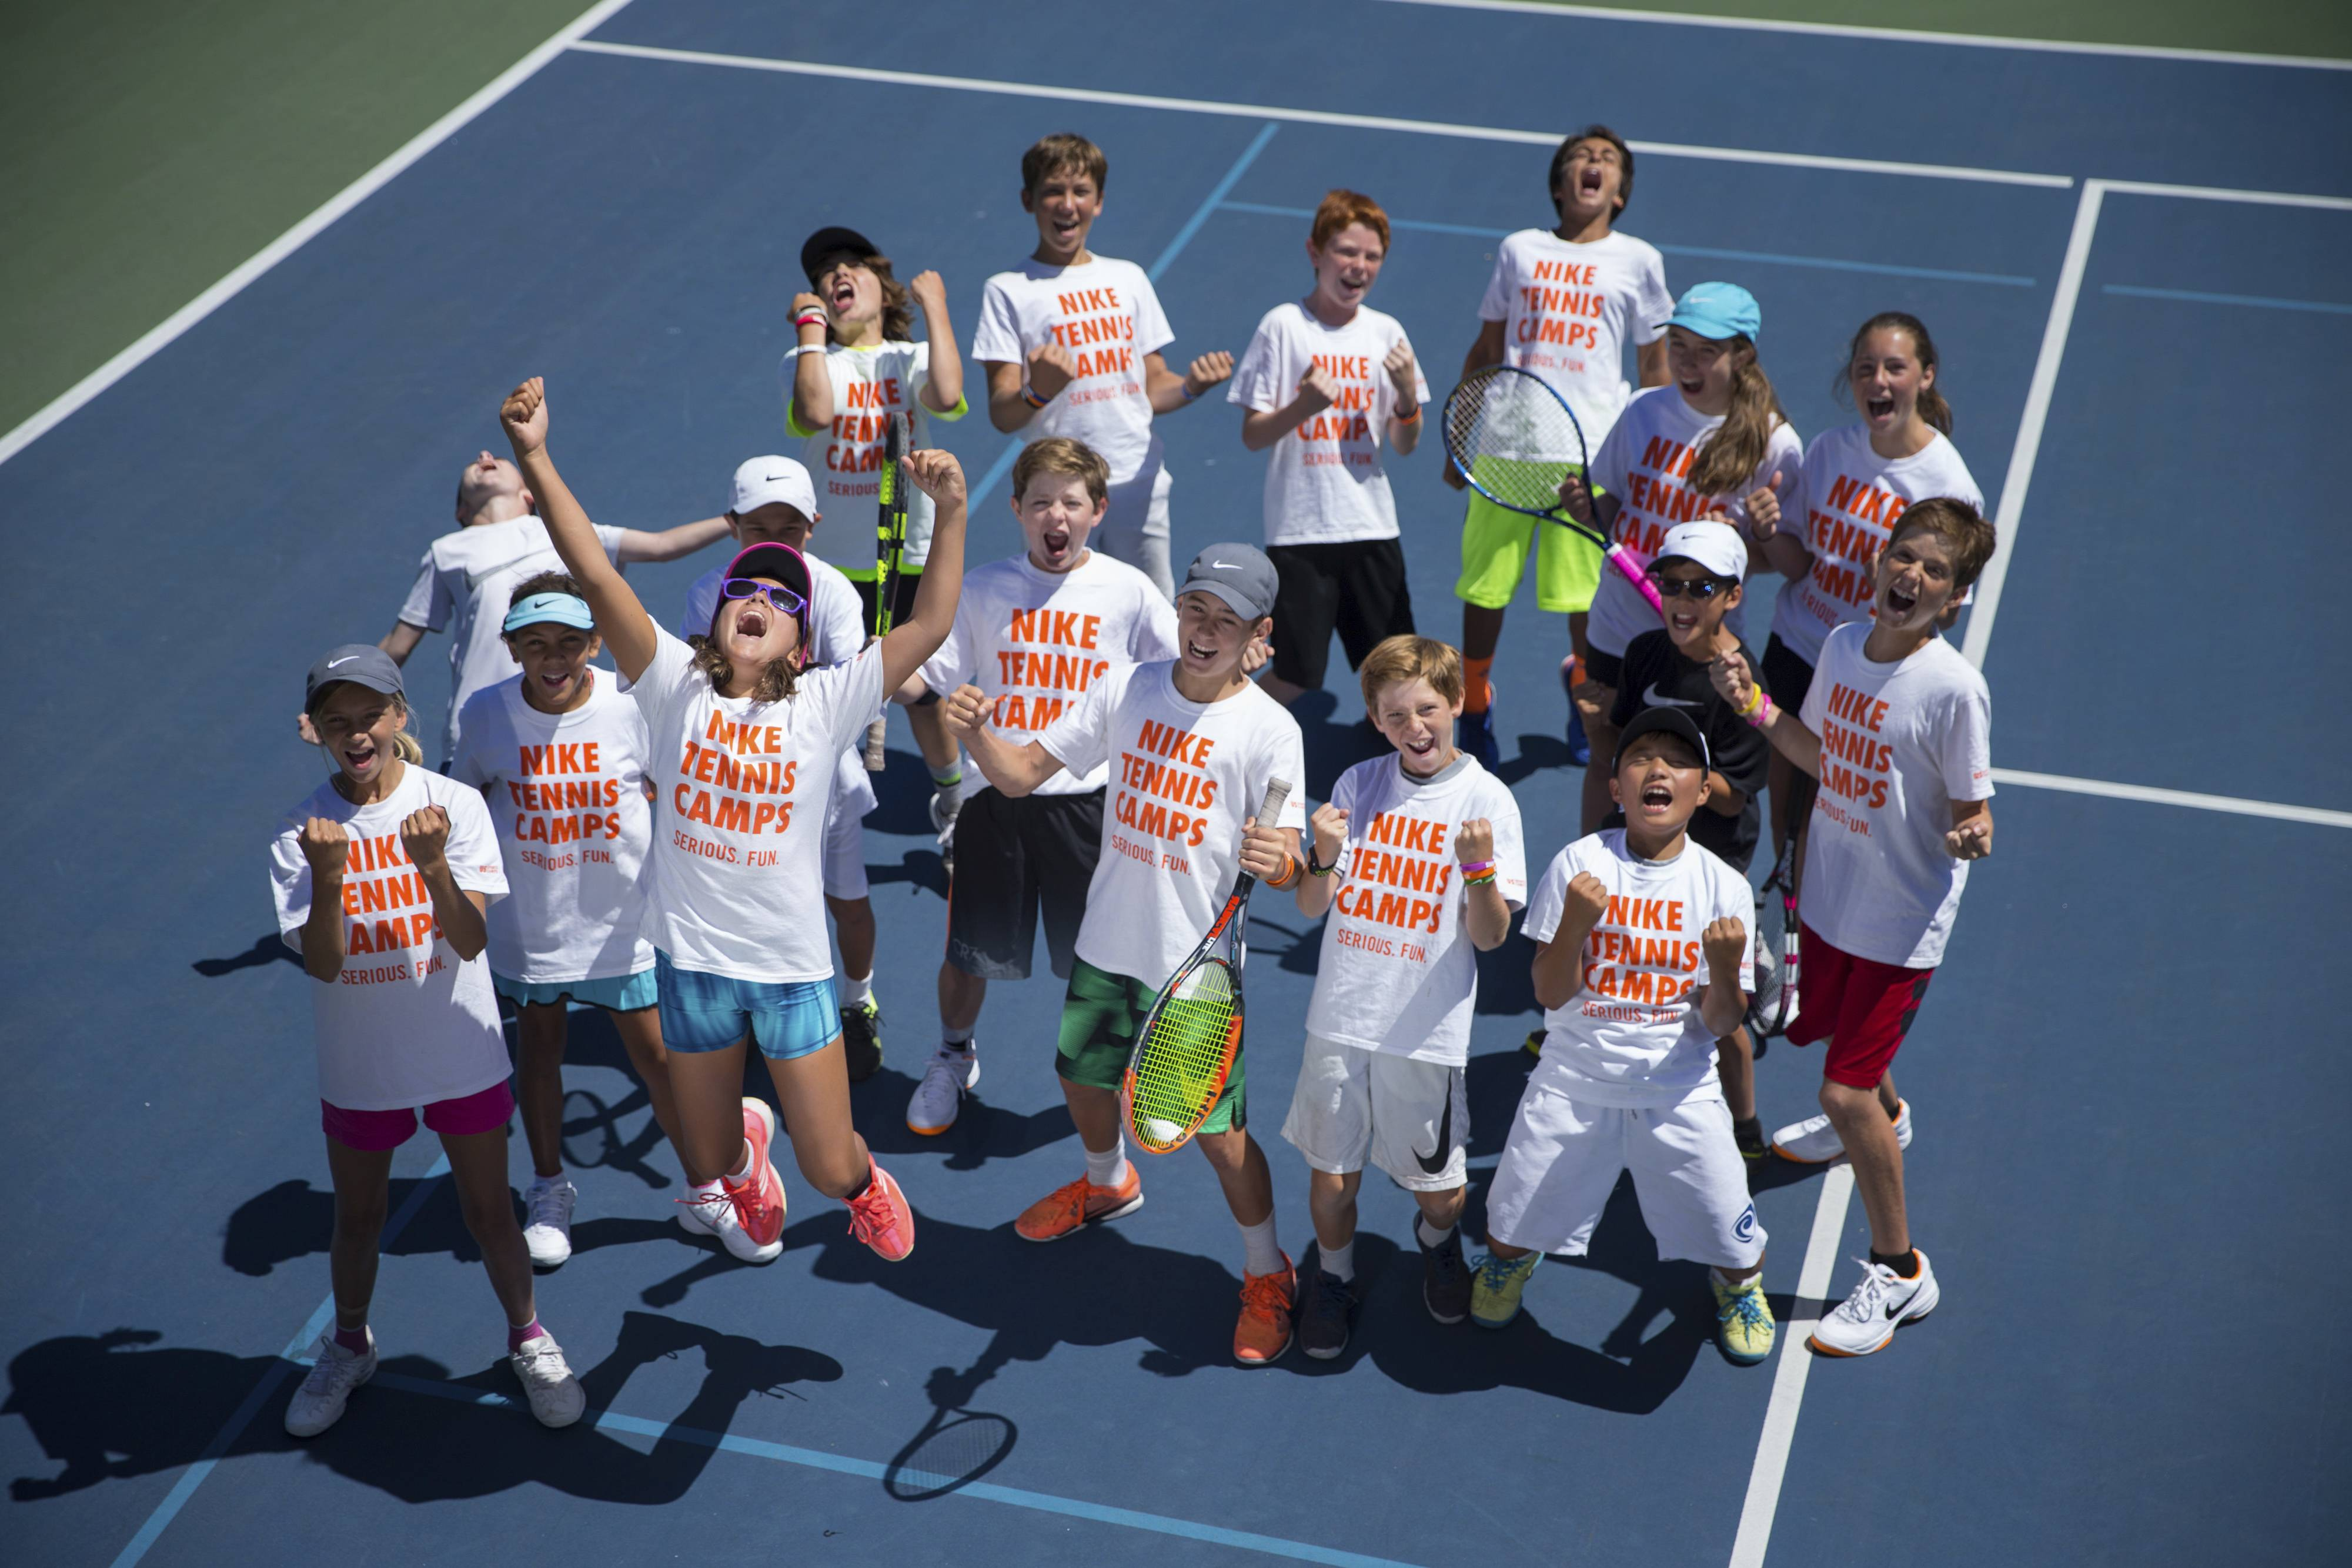 Kids have fun at the Stanford University Nike Tennis Camp in Stanford, California.